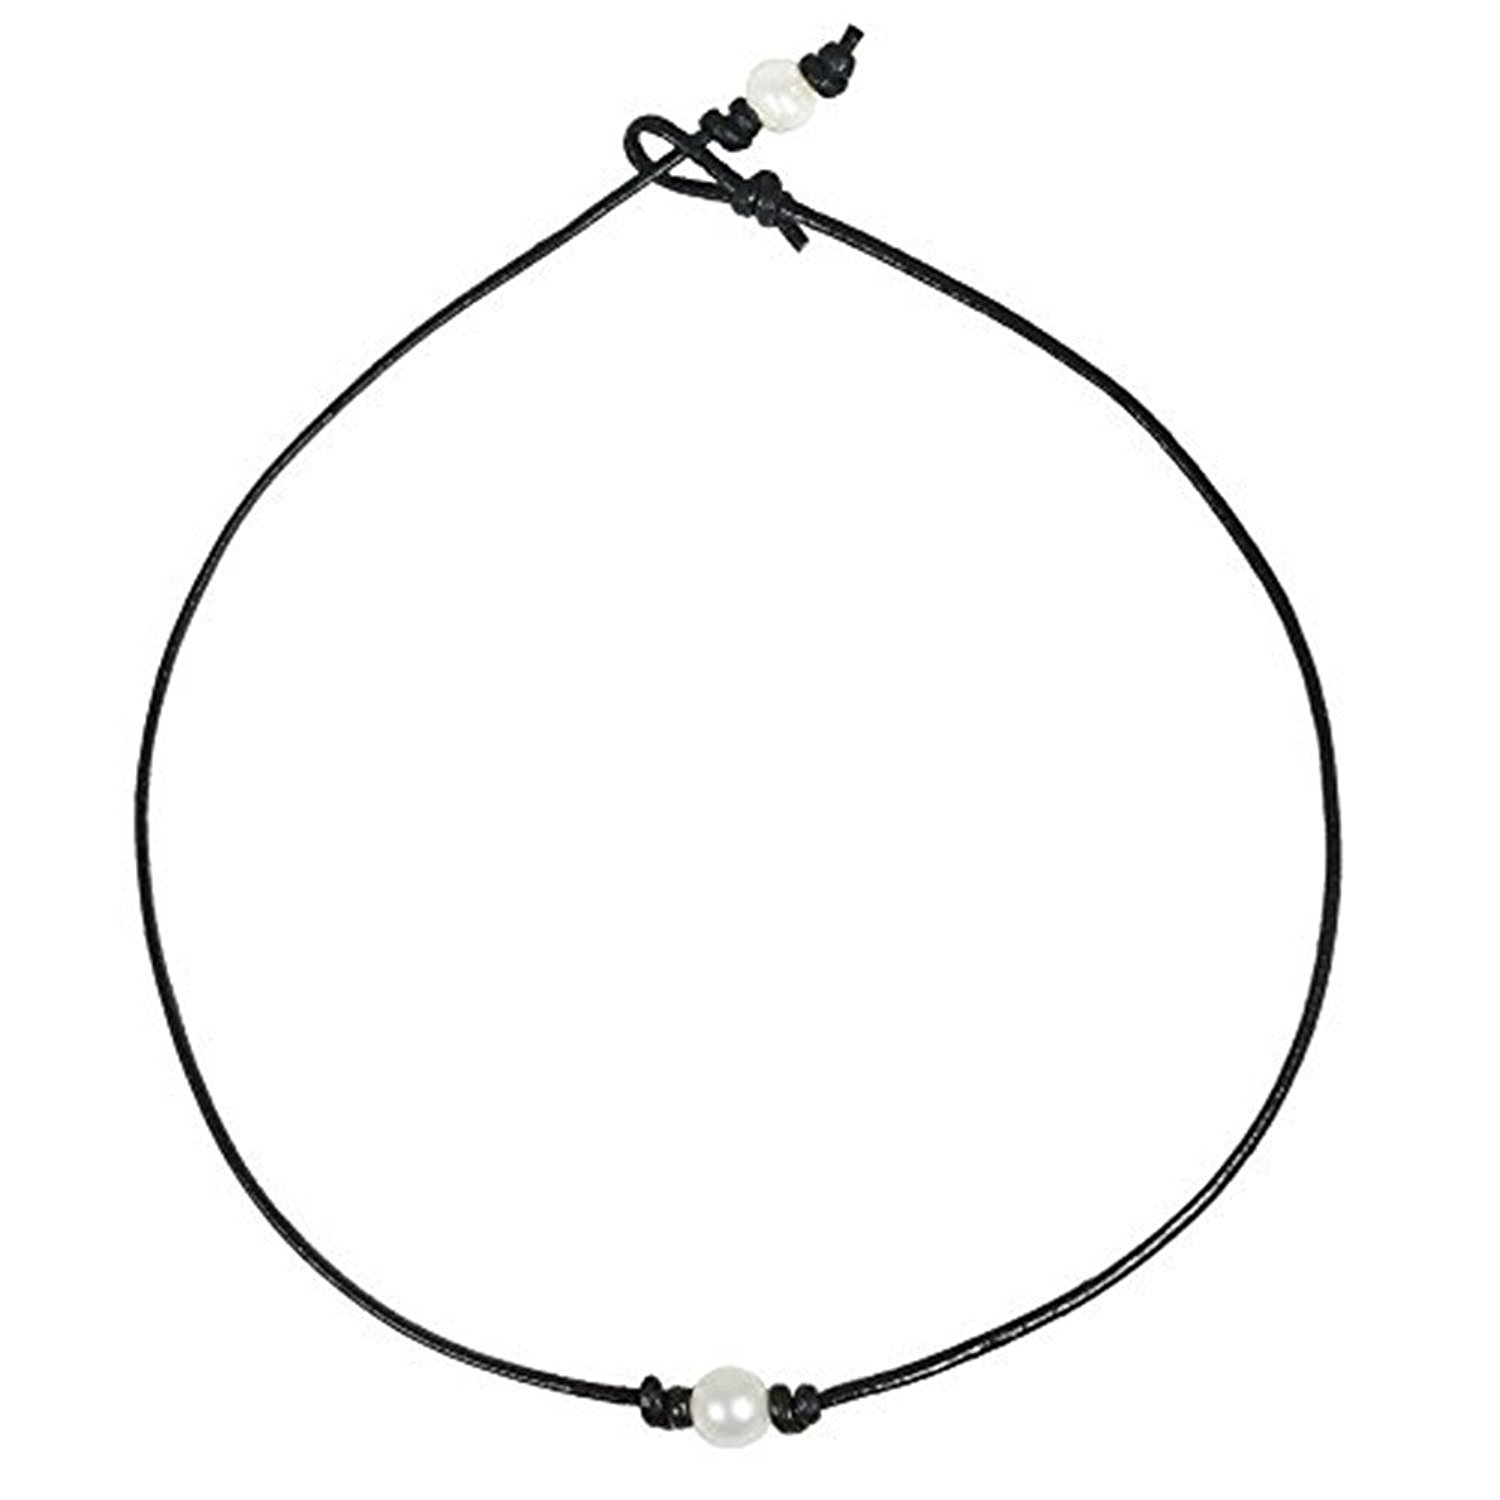 Cultured Freshwater White Pearl Choker Leather Necklace Floating Single Pearl Collar Handmade Jewelry